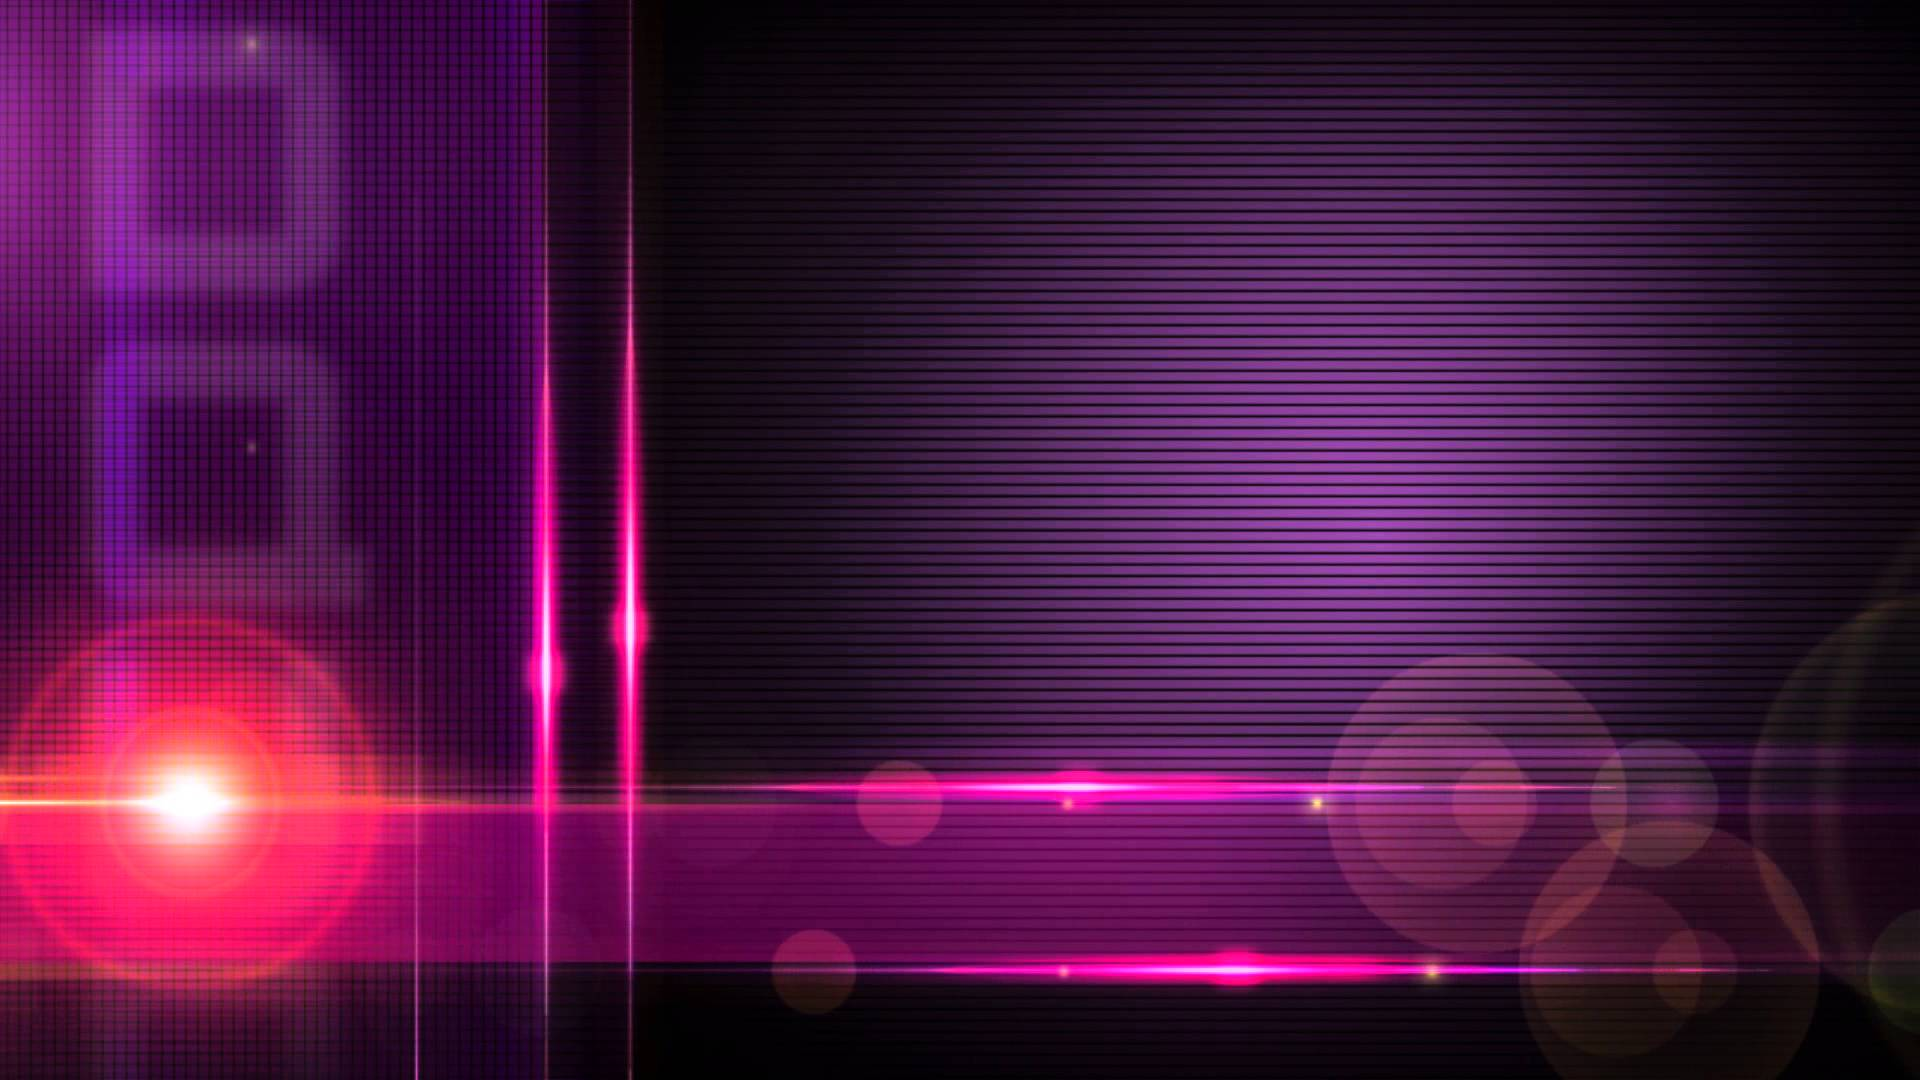 Video Background HD Style Proshow styleproshow. Abstract